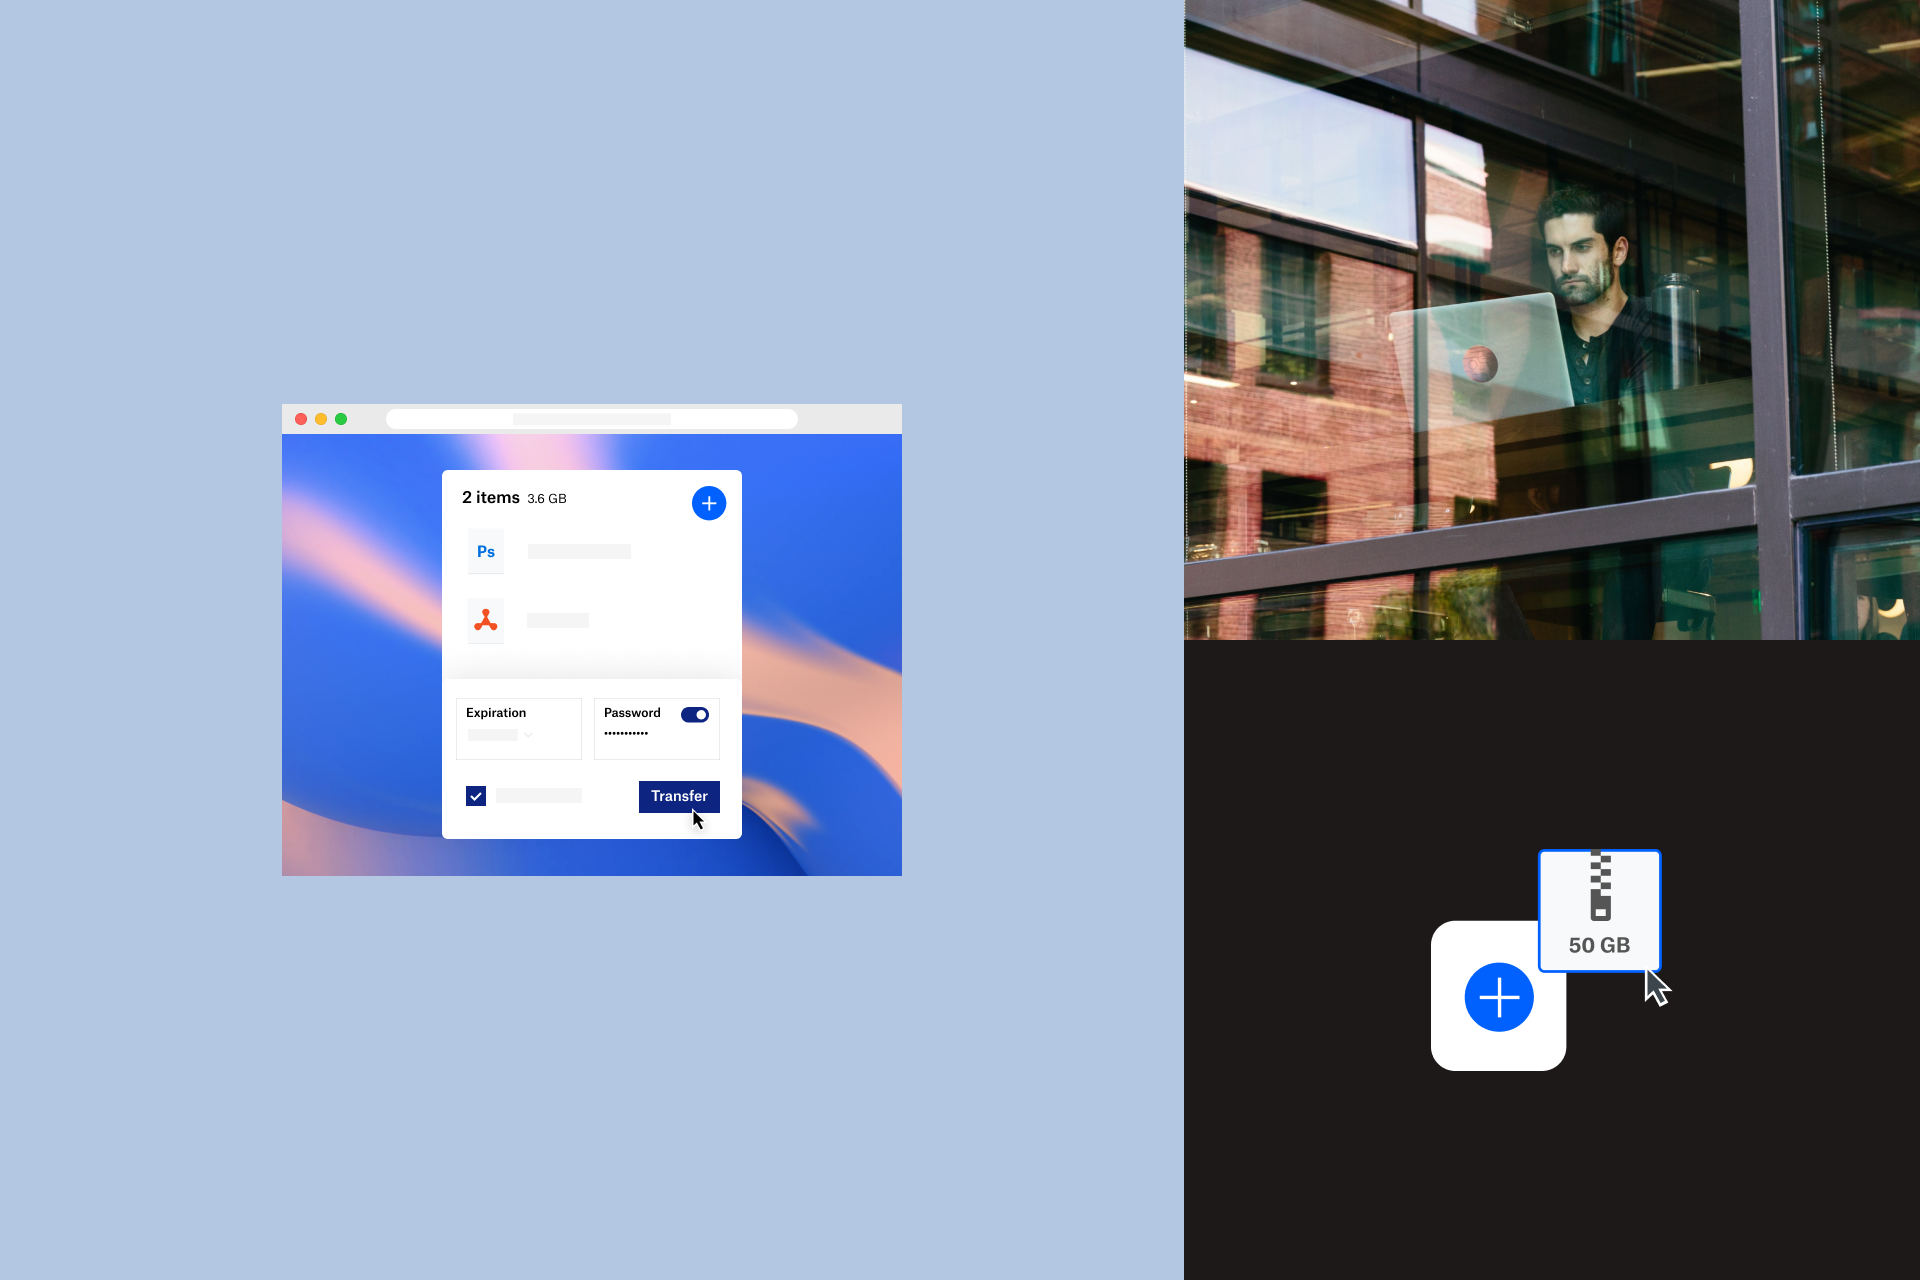 A view of the Dropbox transfer interface